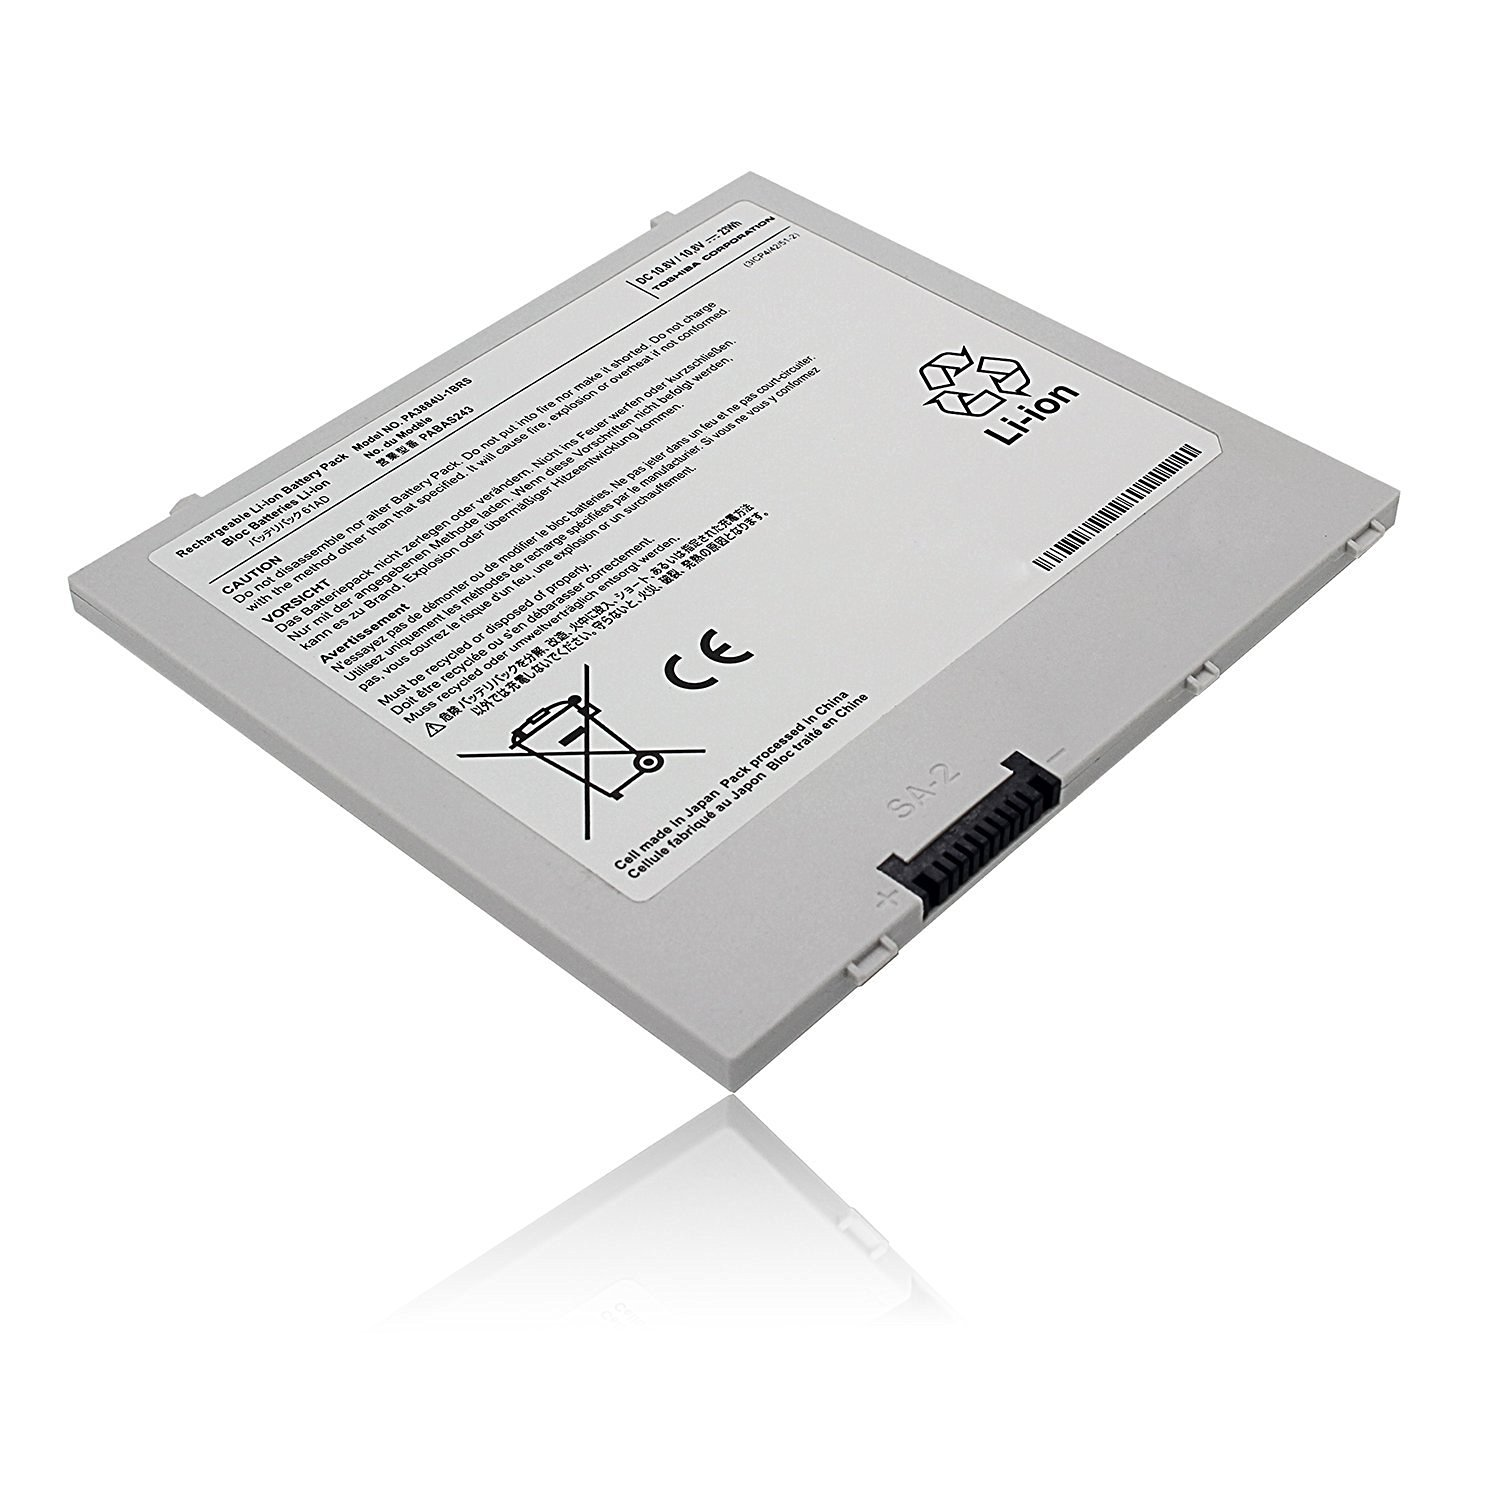 "Egoway® PA3884U-1BRS PA3966U-1EAD PABAS243 Battery for Toshiba Thrive AT105 10"" Pad Tablet [Li-Polymer 11.1V/23Wh]"